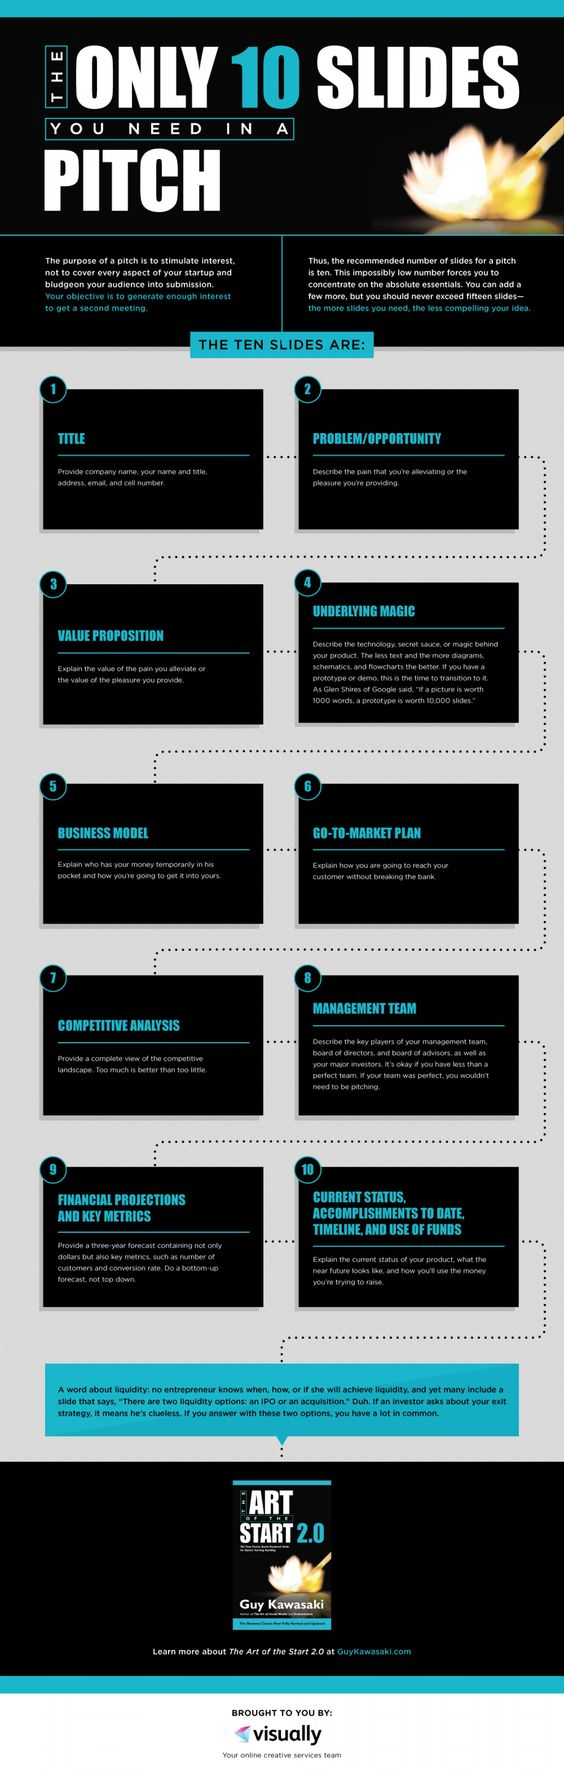 10 slide pitch infographic